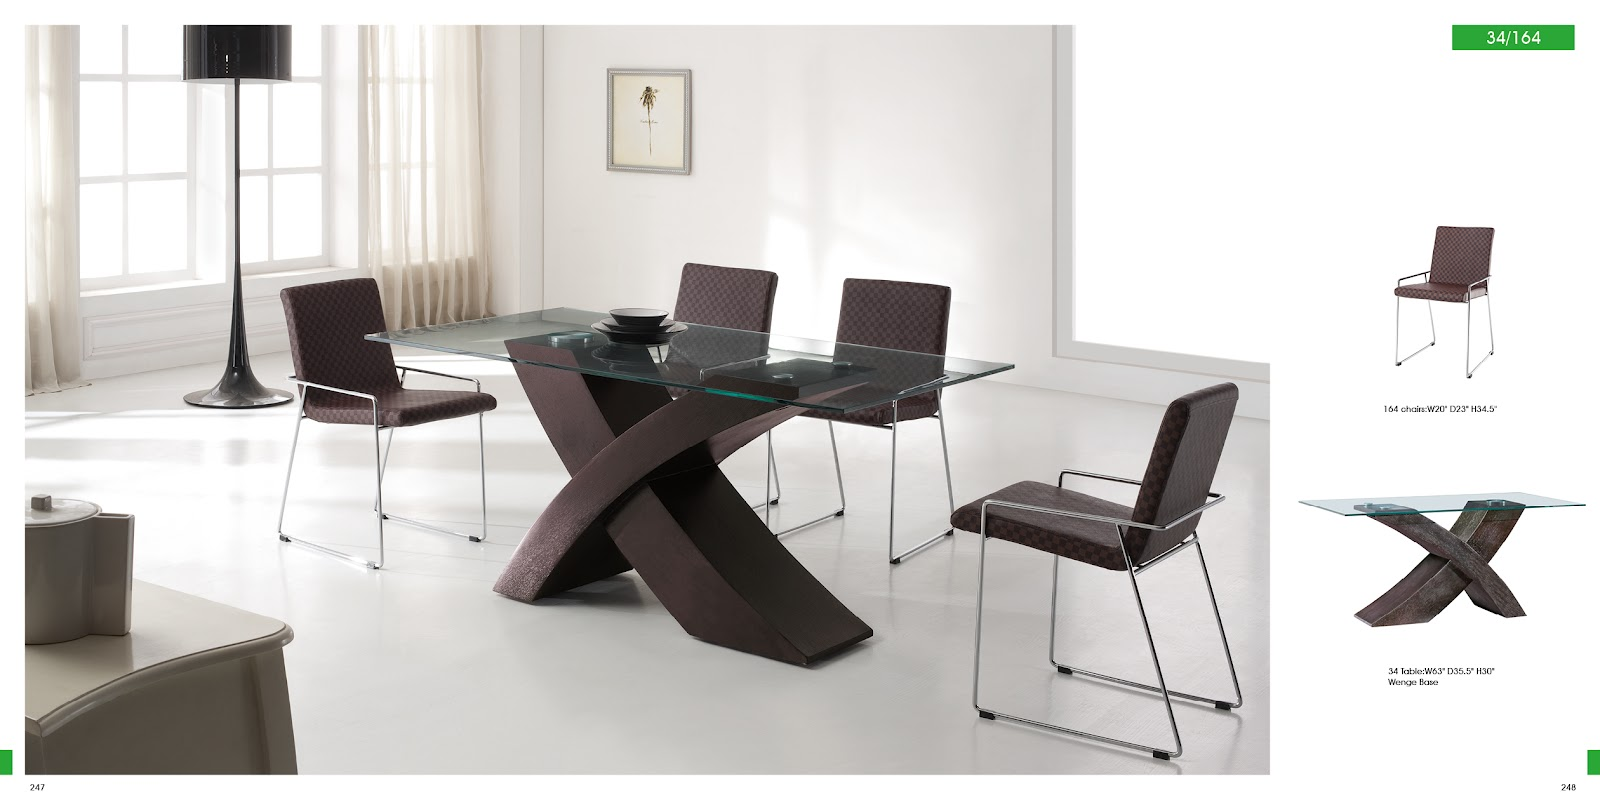 Unique dinette sets long island new york uniquedinetteny for Dining room furniture modern